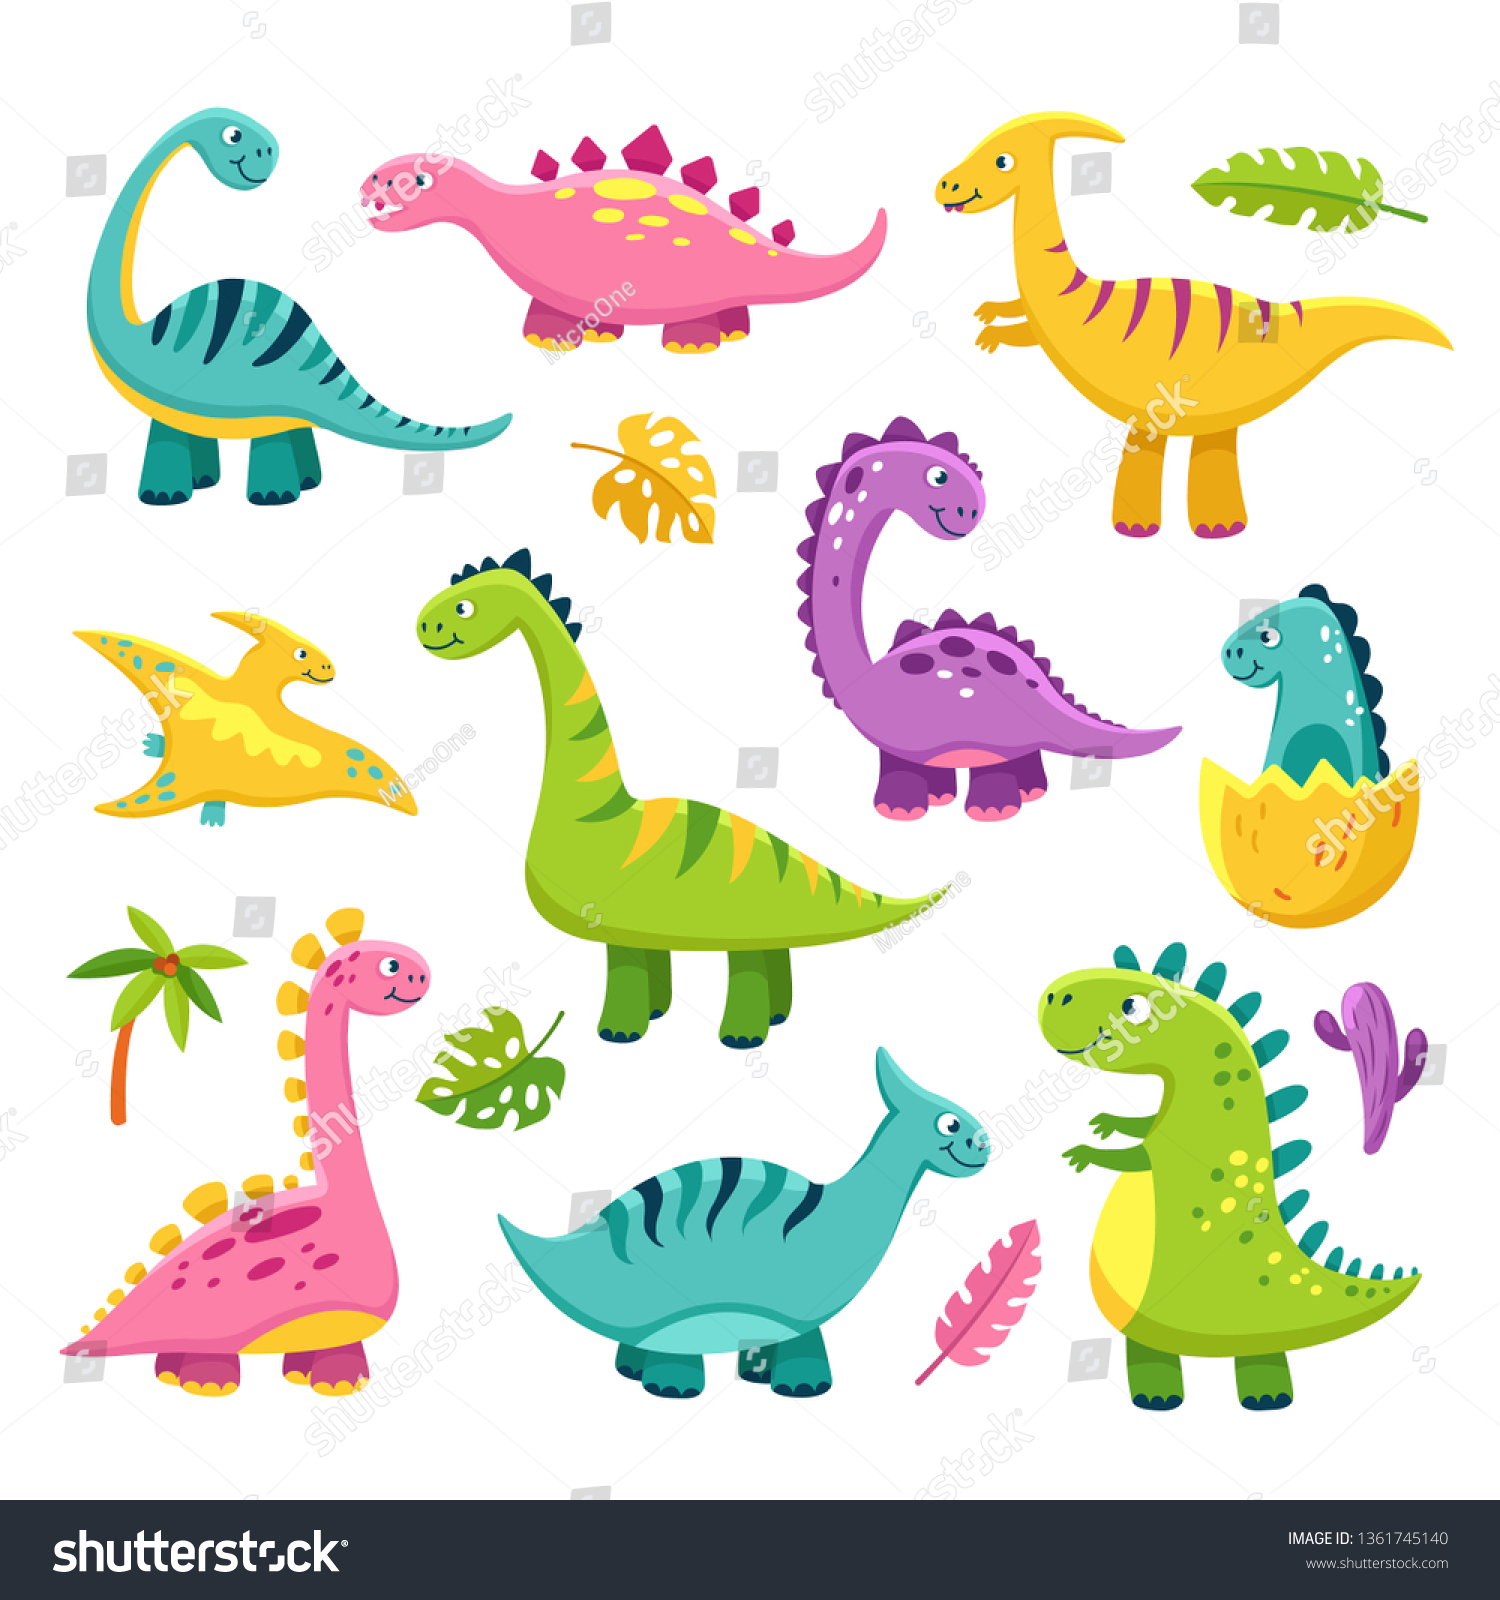 Cartoon Dinosaur Cartoon Cute Baby Dino Stock Vector Royalty Free 1361745140